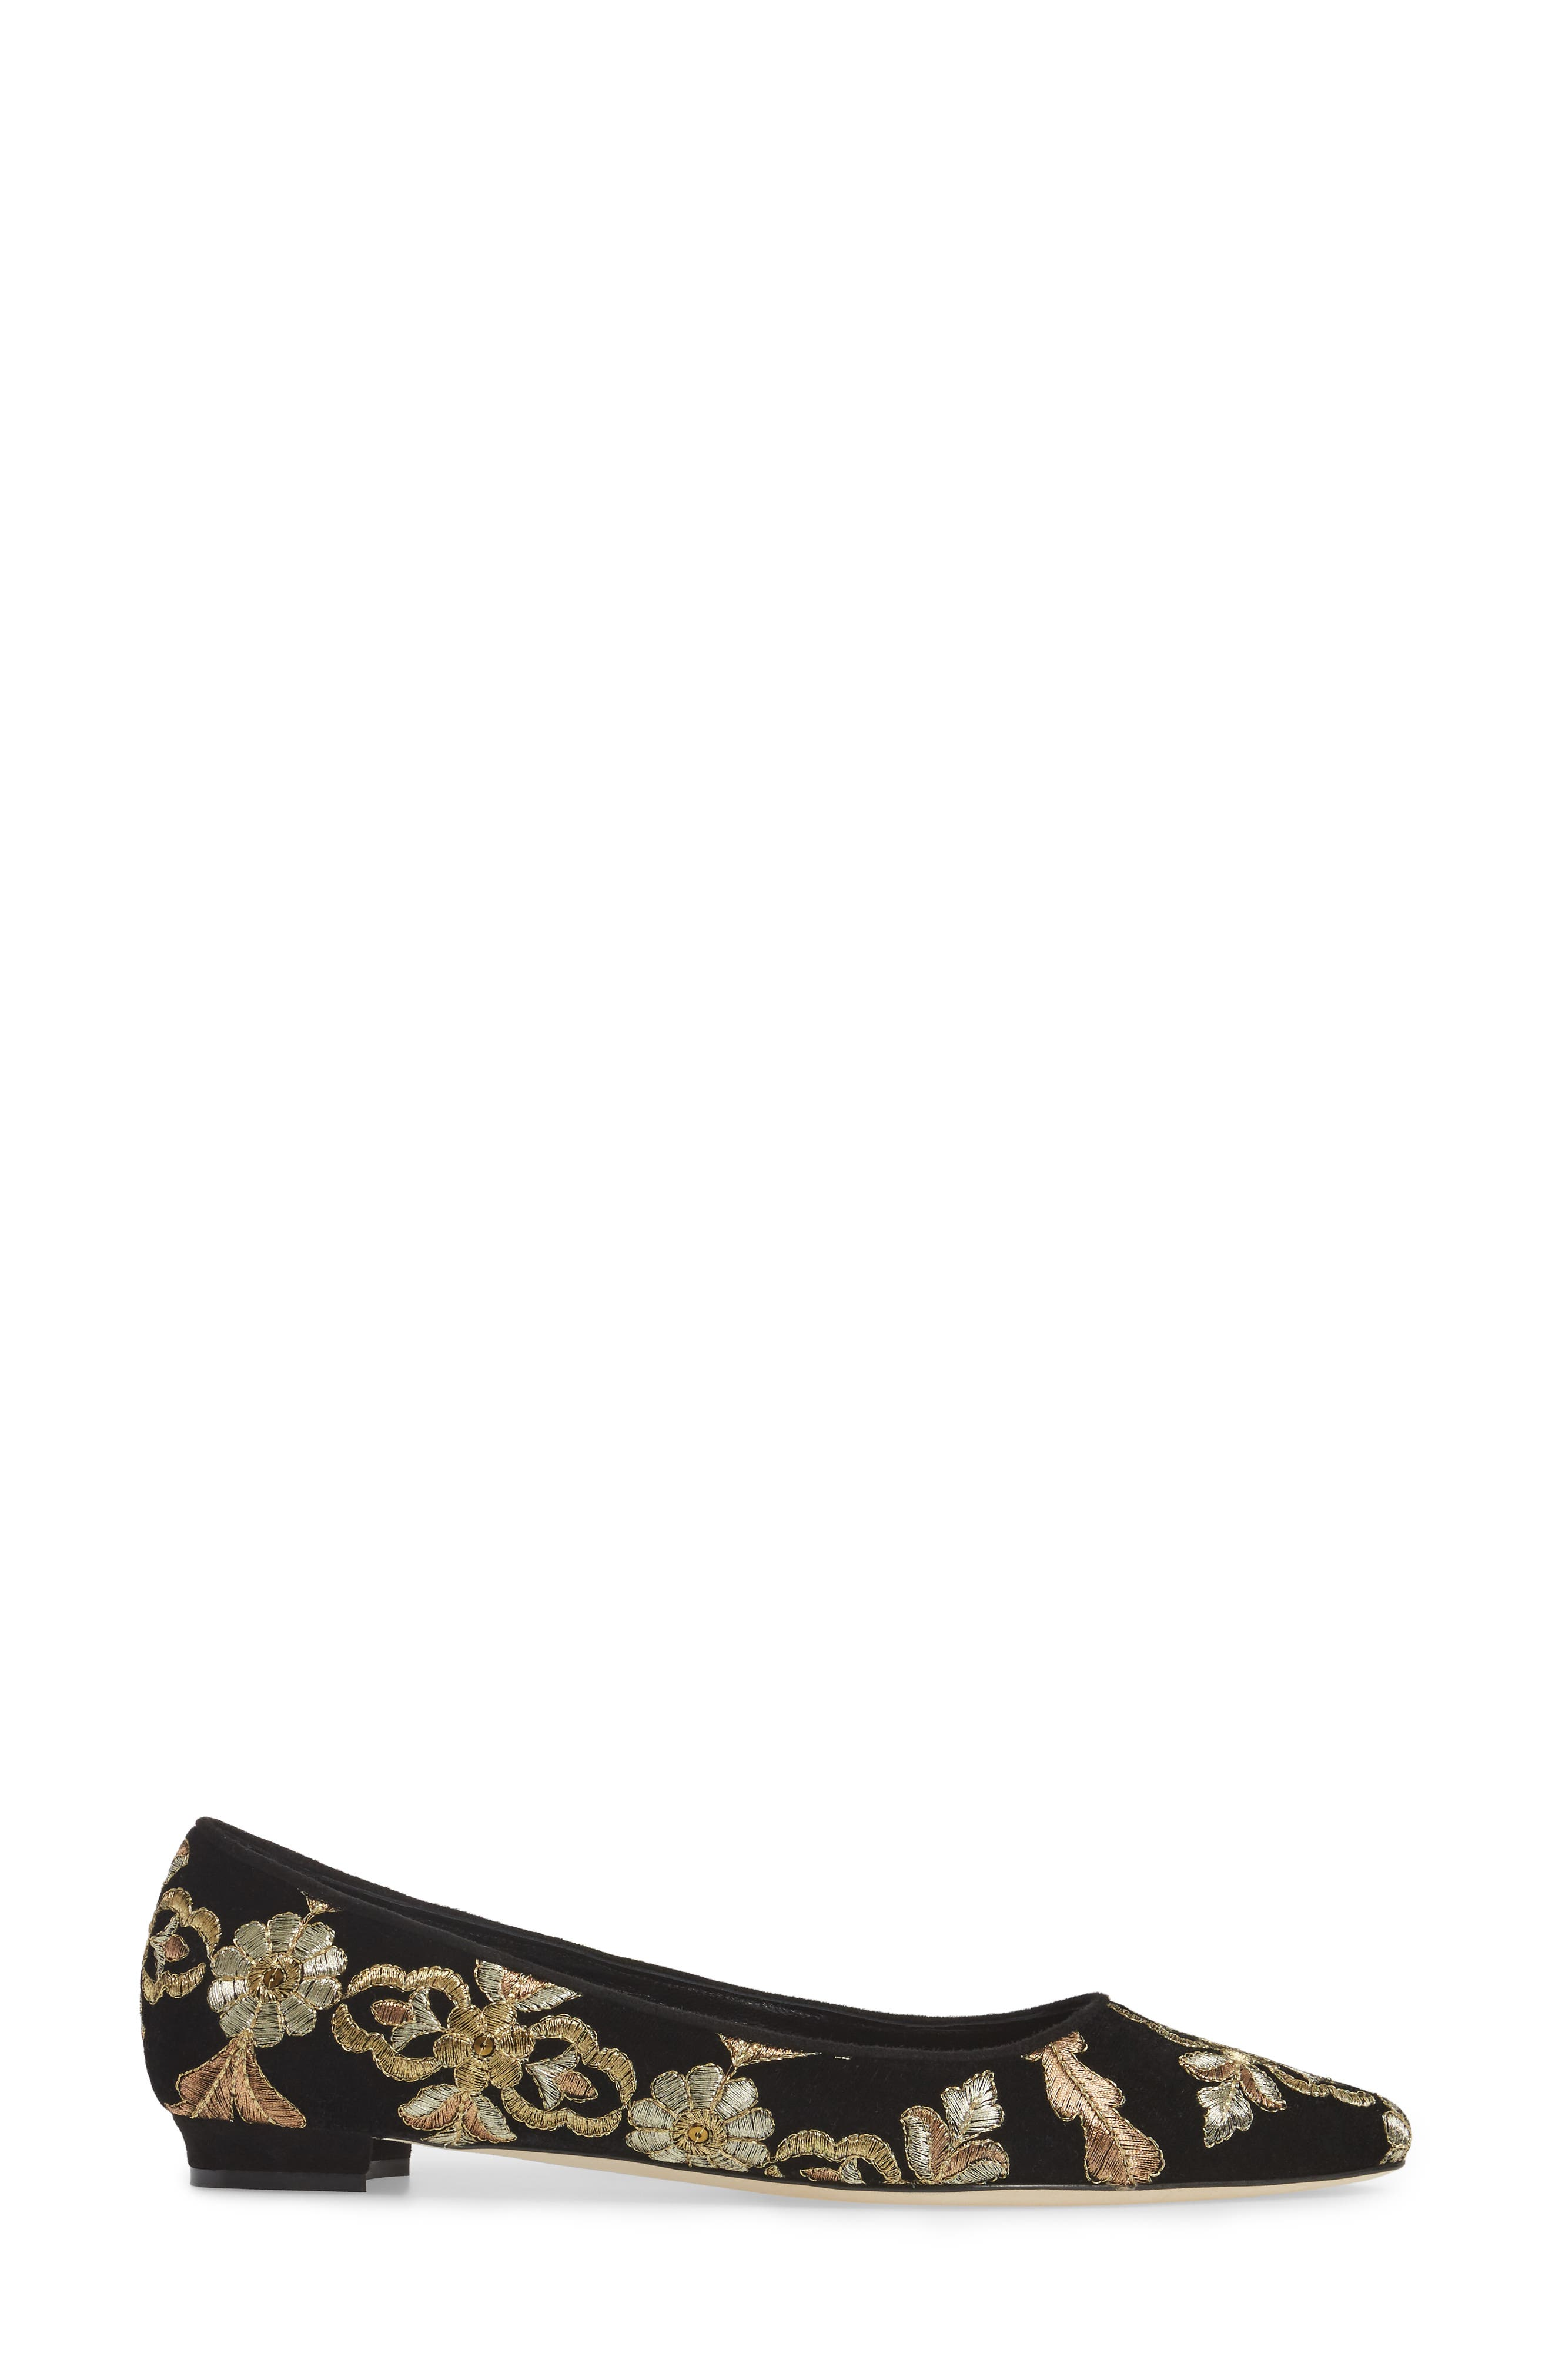 Alternate Image 3  - Manolo Blahnik Tittermo Floral Embroidered Ballet Flat (Women)